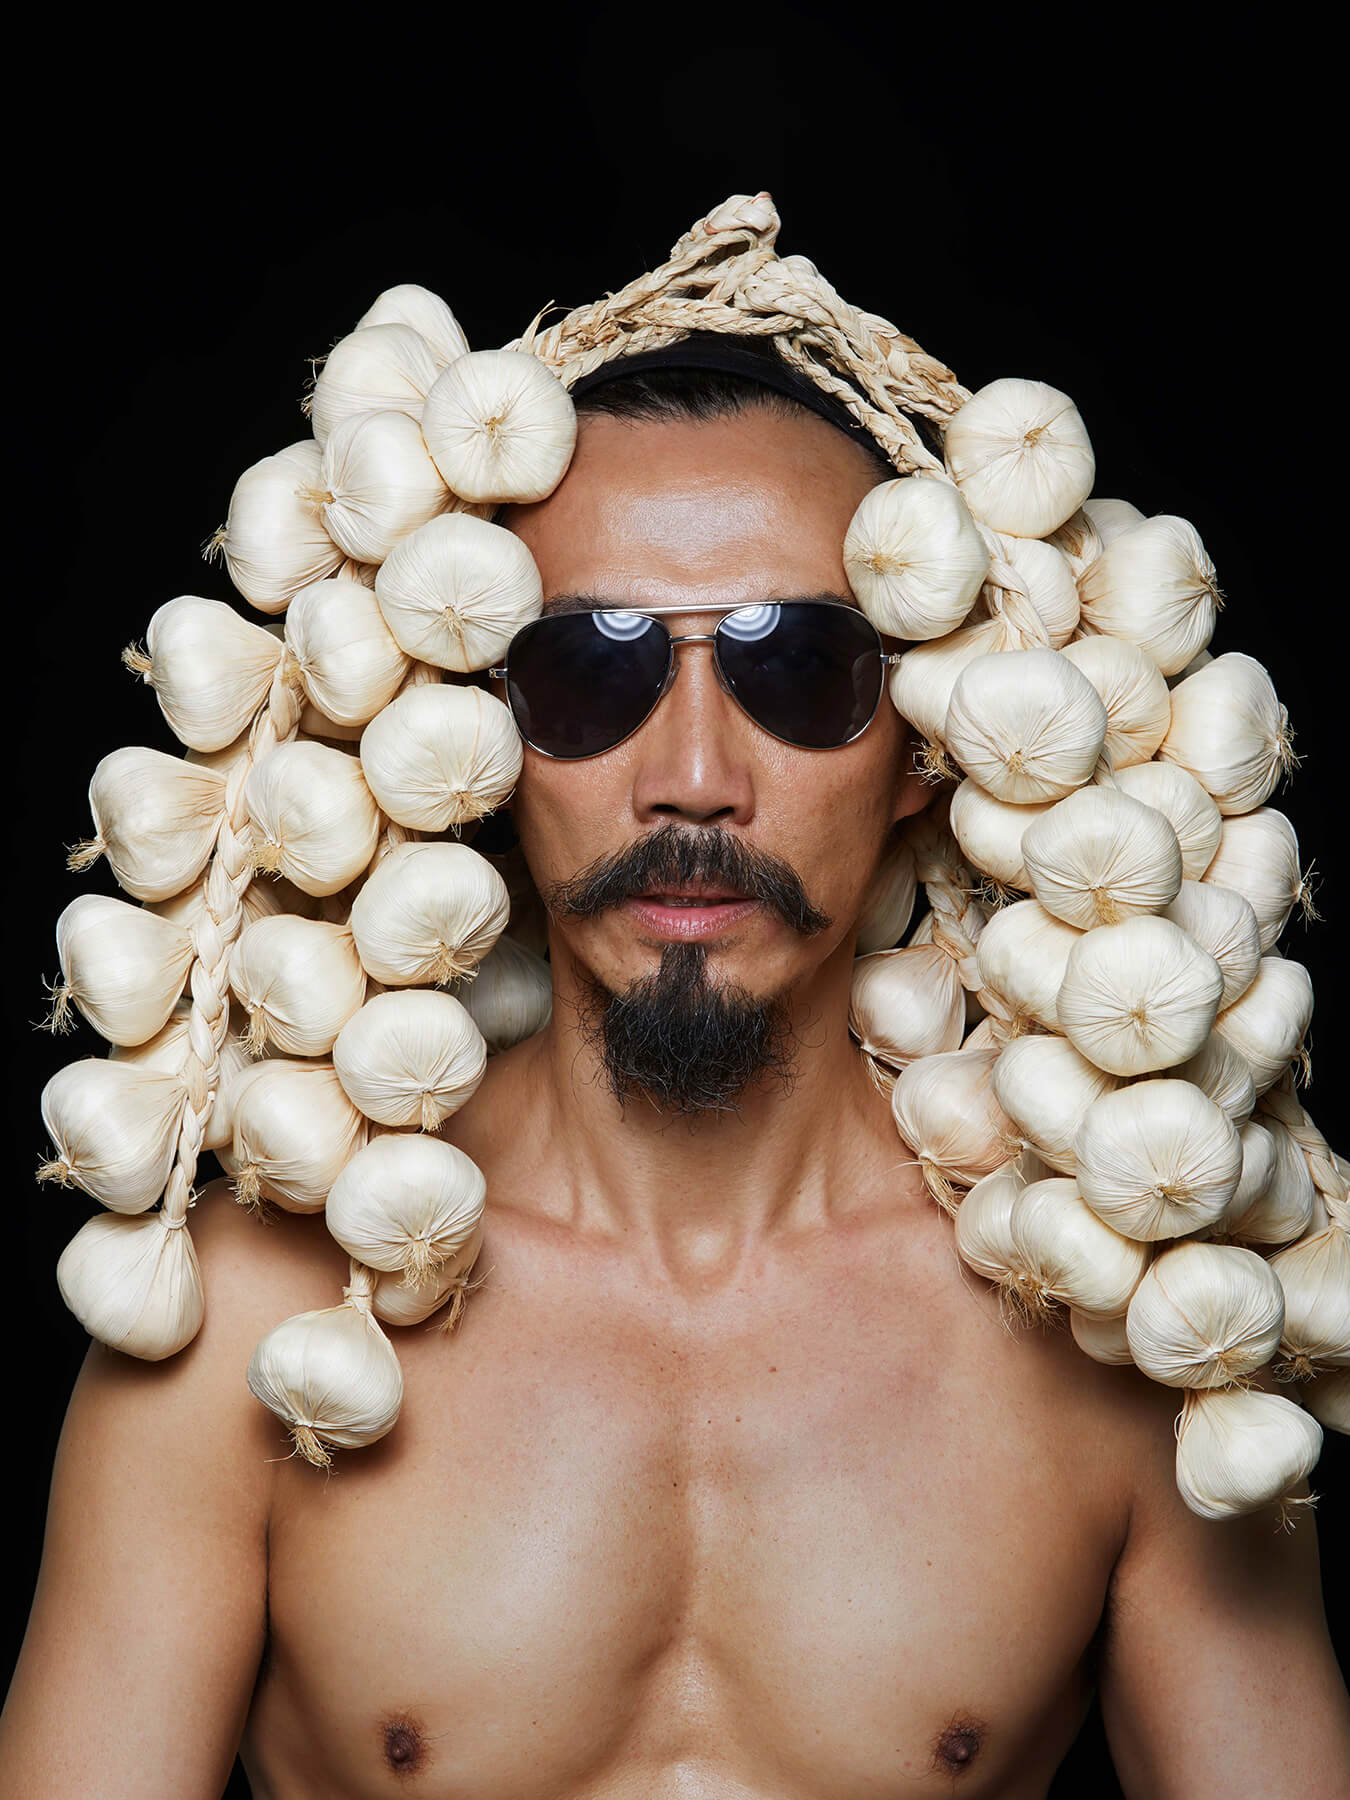 13 Oct 2017 FRIDAY 13TH: Derong is wearing strings of garlic over his head